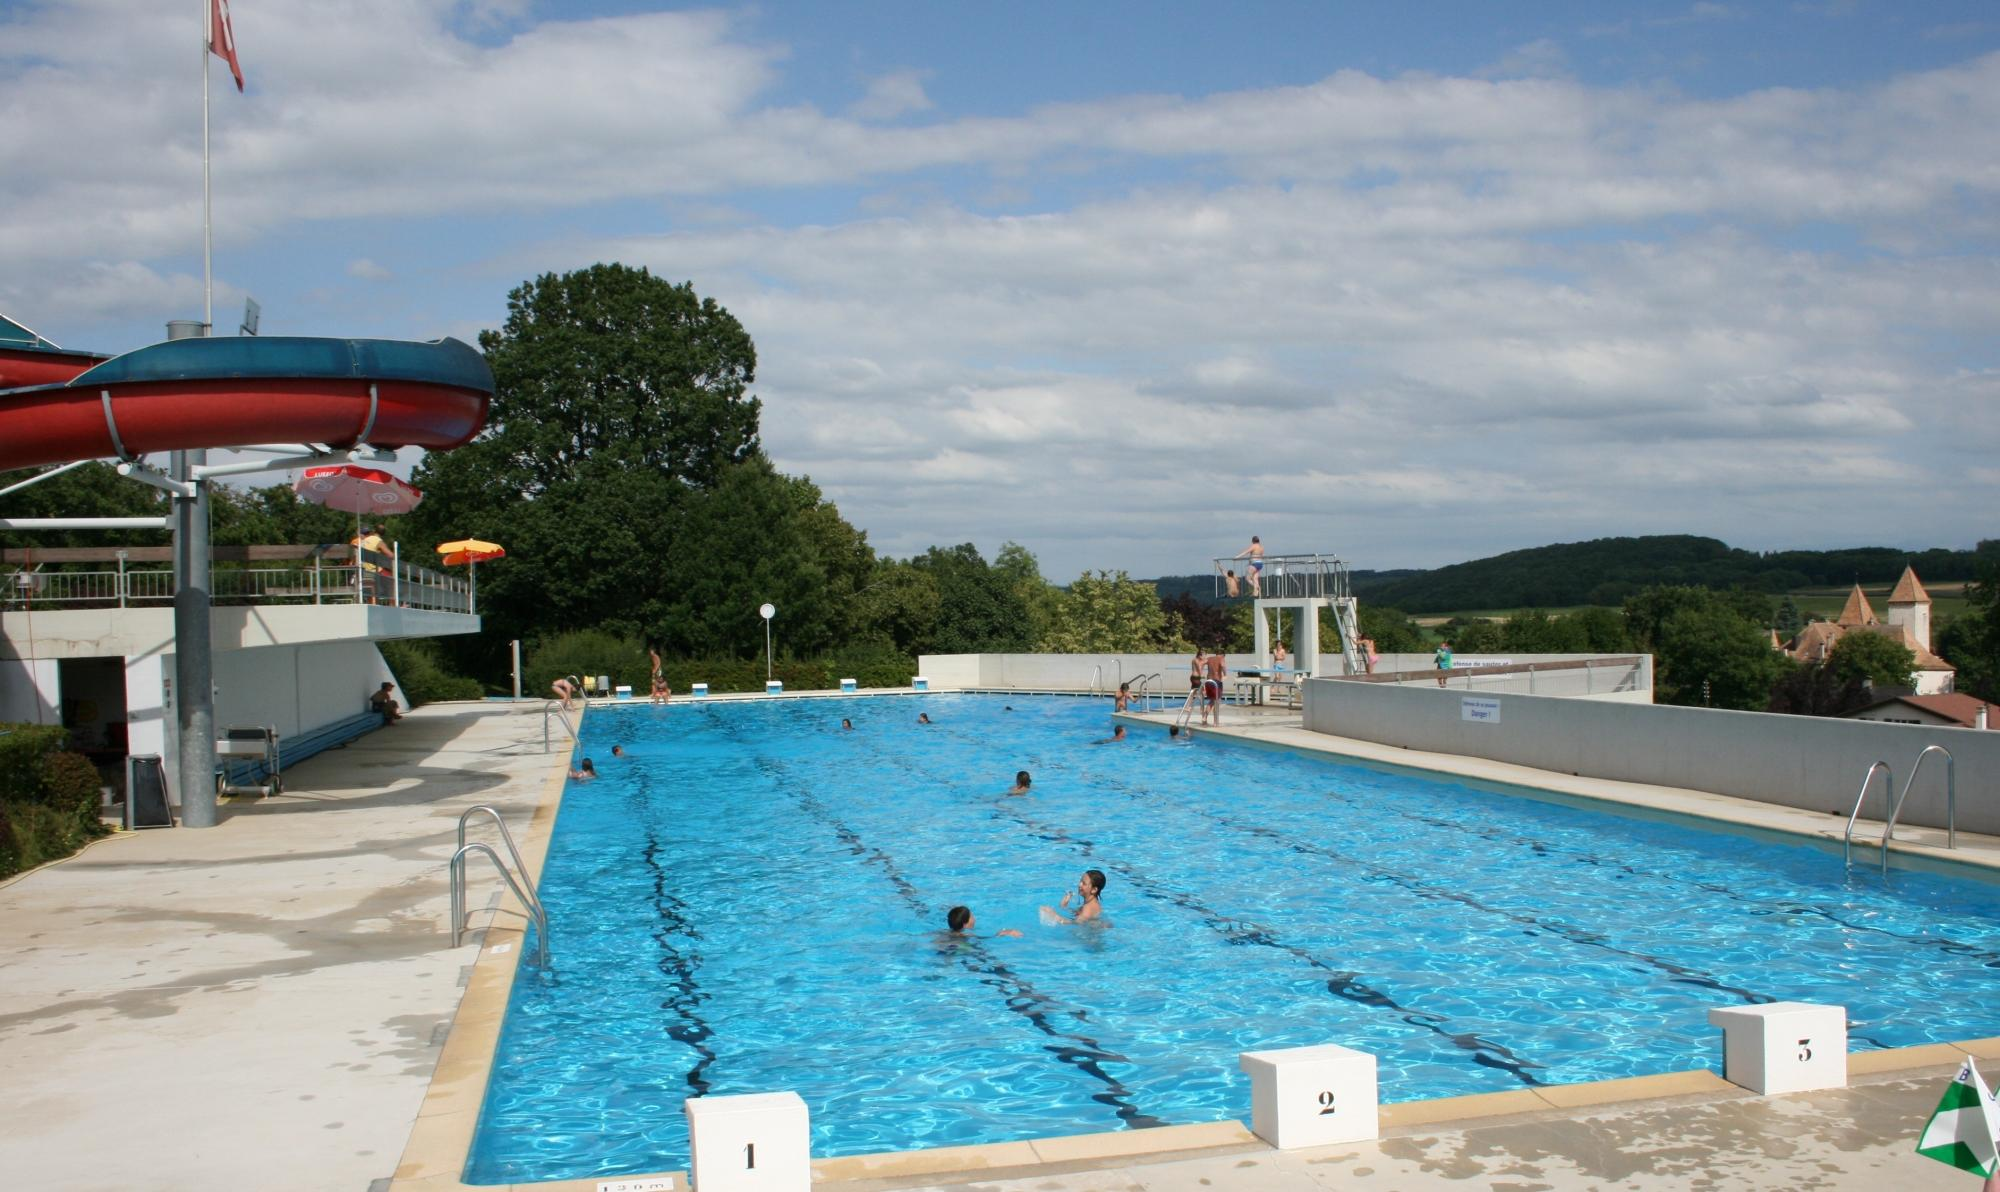 Camping des buis morges r gion suisse for Piscine de camping